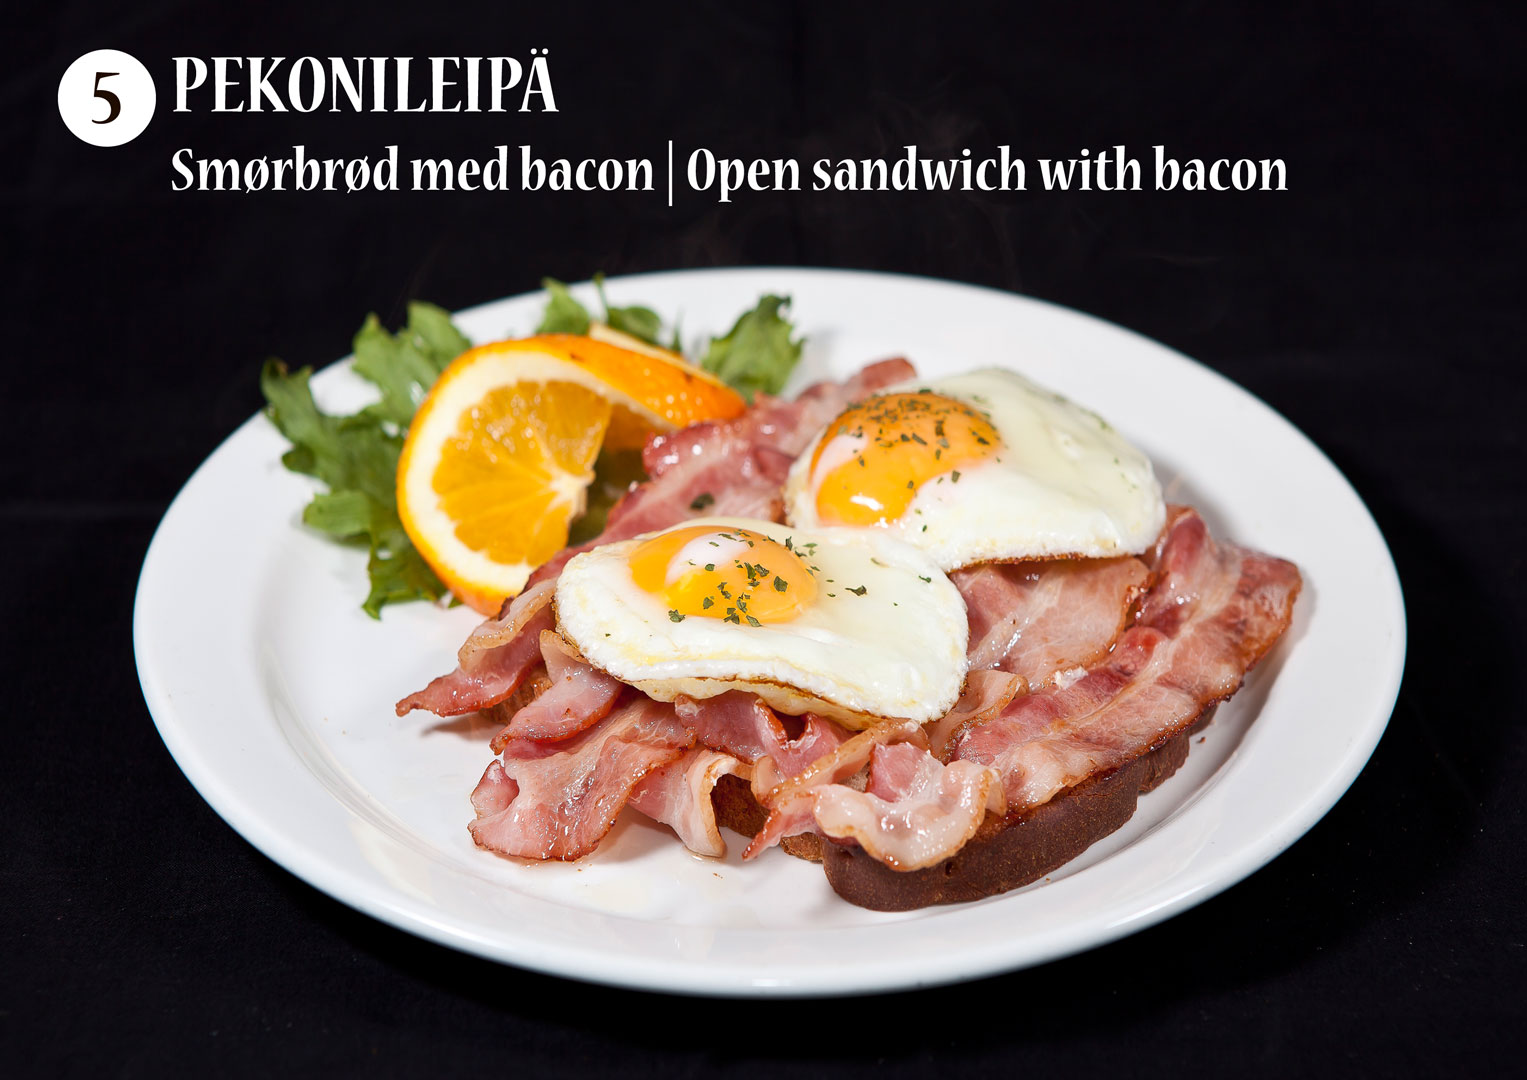 Pekonileipä | Smørbrød med bacon | Open sandwich with bacon